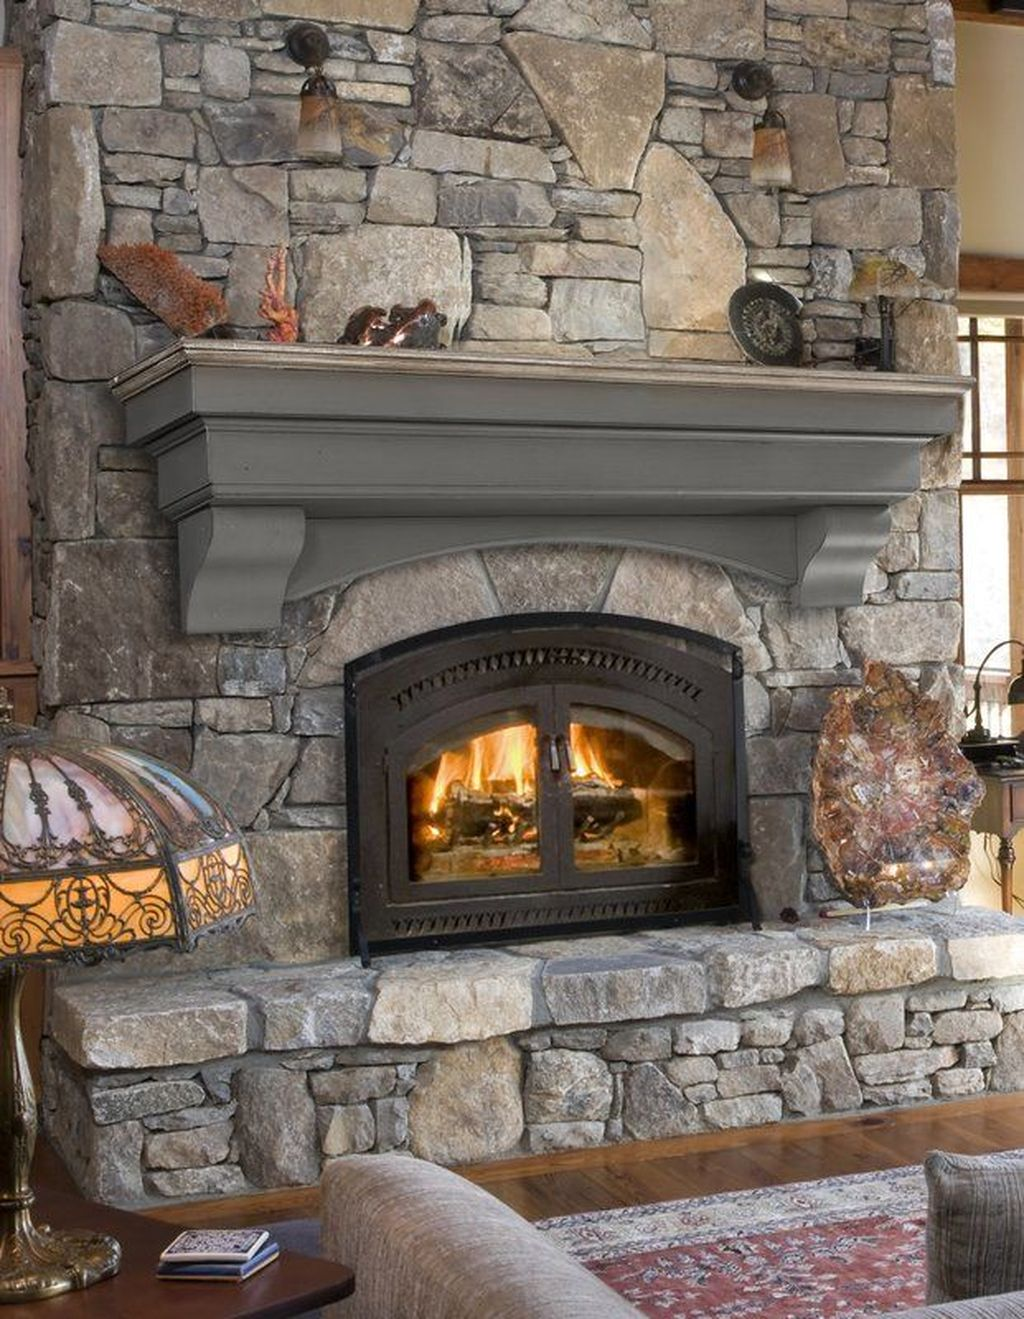 Stunning Fireplace Mantel Decor Ideas You Should Copy Now 25